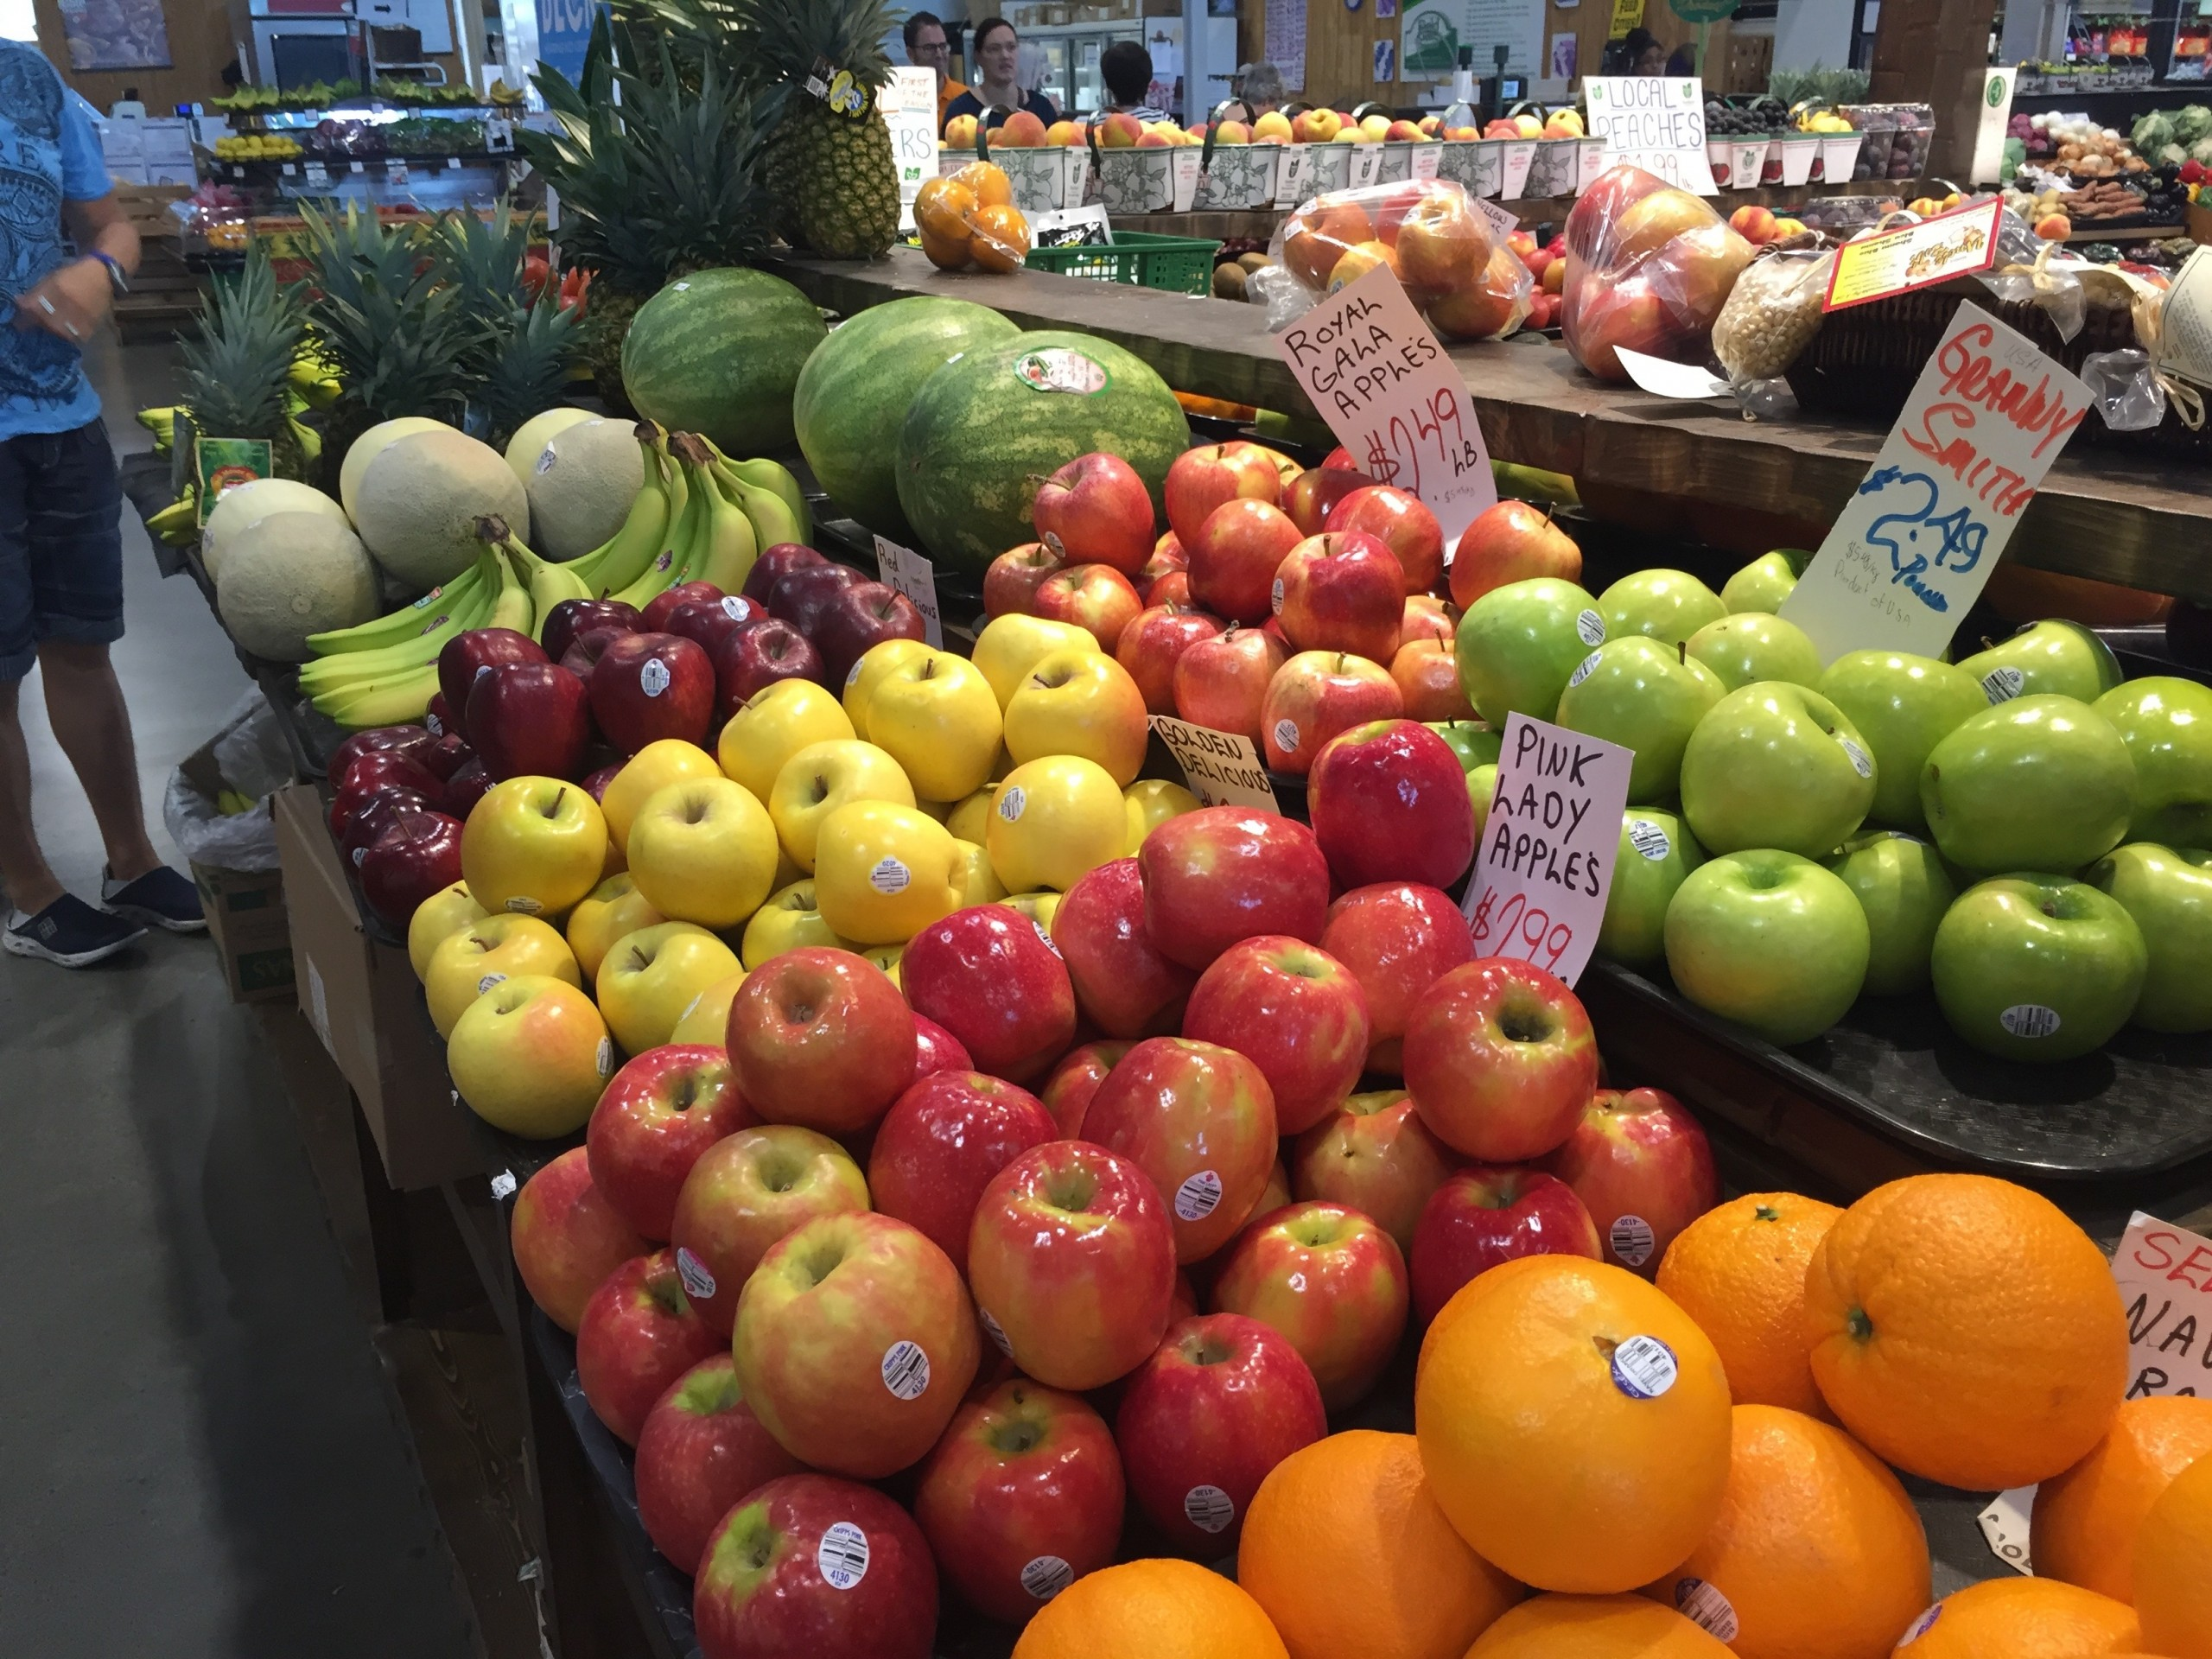 The convenience and affordability of buying local